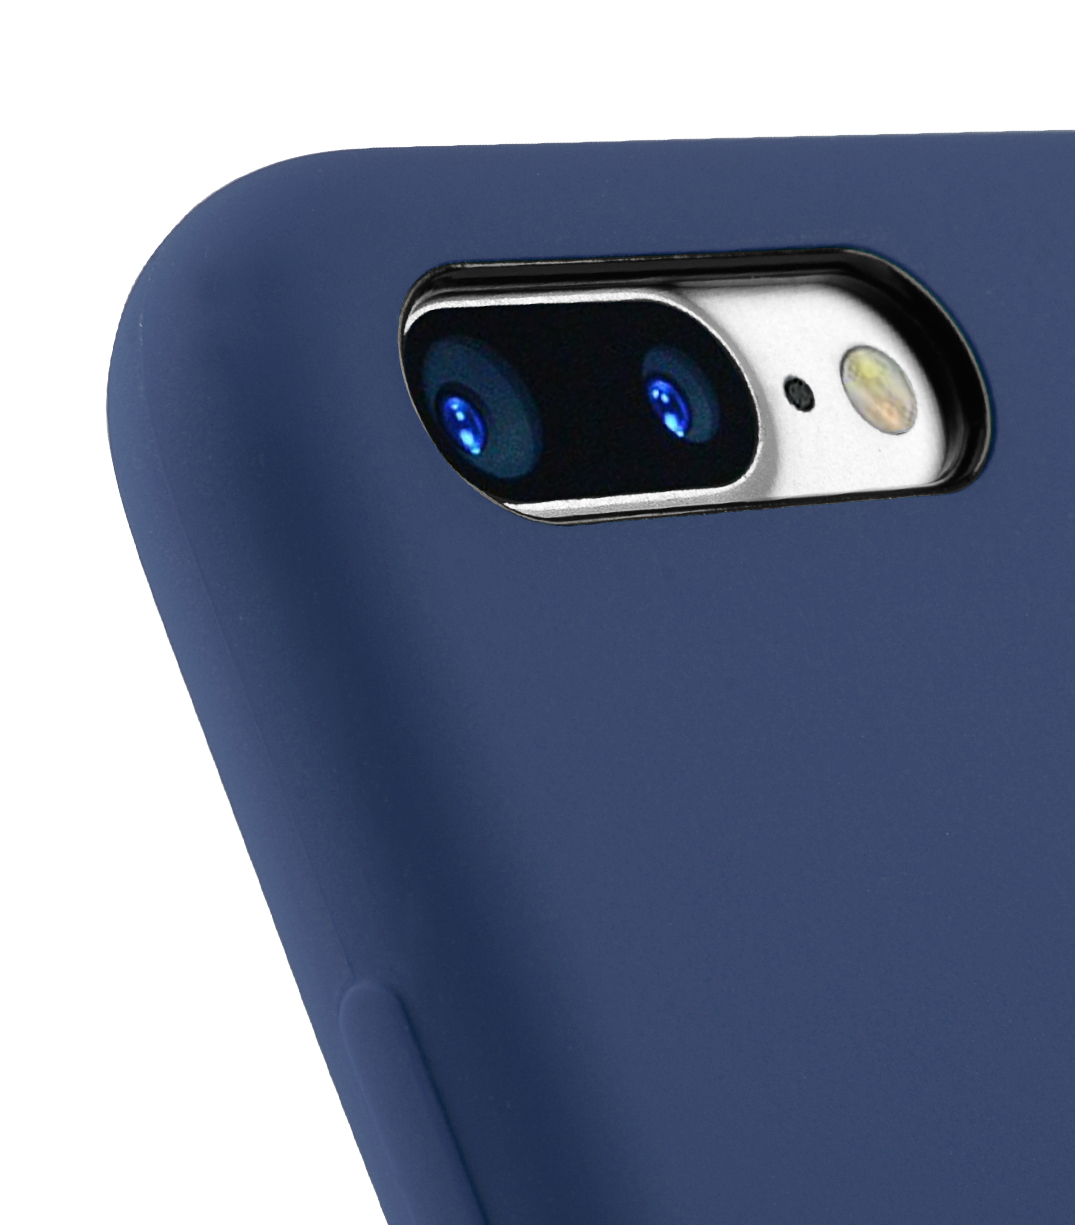 melkco iphone 7 case